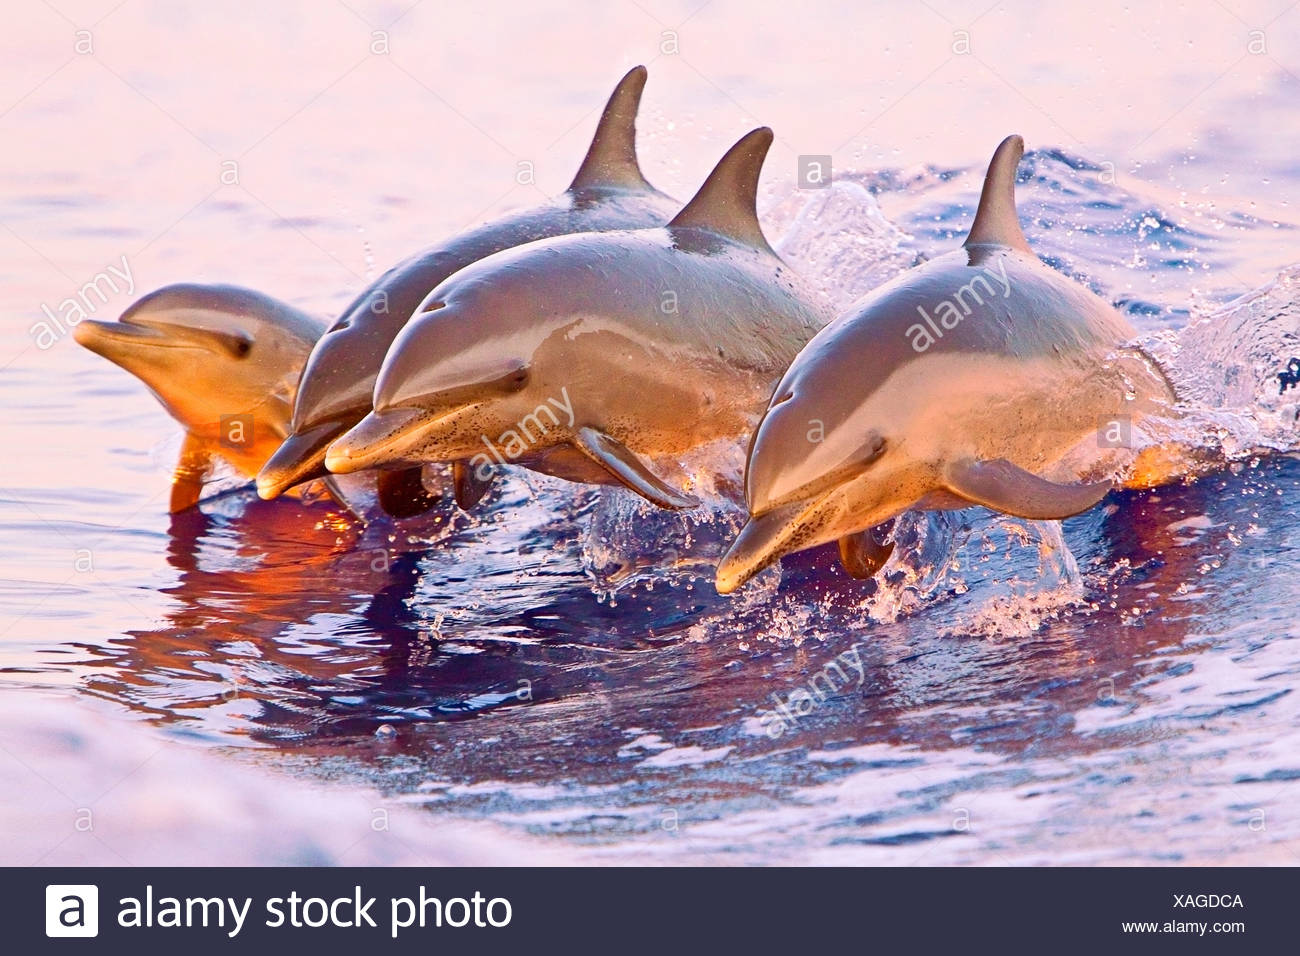 Pantropical spotted dolphins, Stenella attenuata, juveniles and baby, jumping out of boat wake at sunset - Stock Image